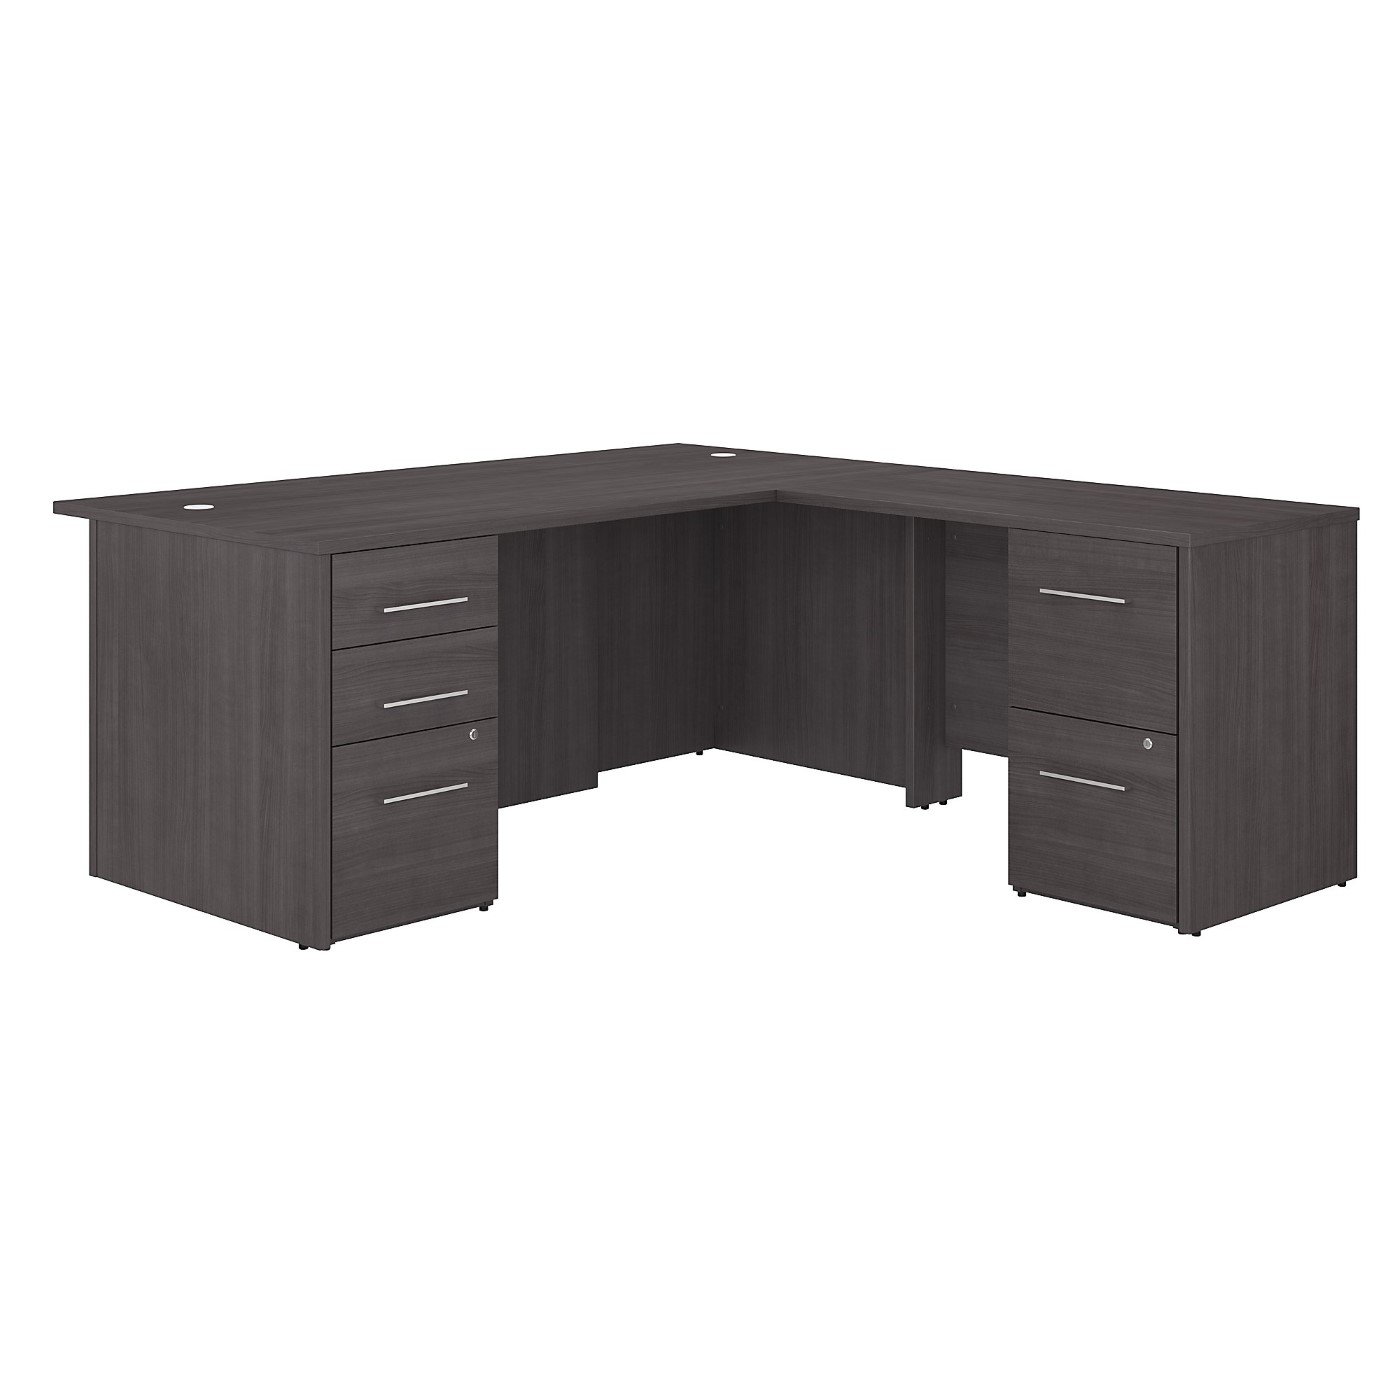 BUSH BUSINESS FURNITURE OFFICE 500 72W L SHAPED EXECUTIVE DESK WITH DRAWERS. FREE SHIPPING